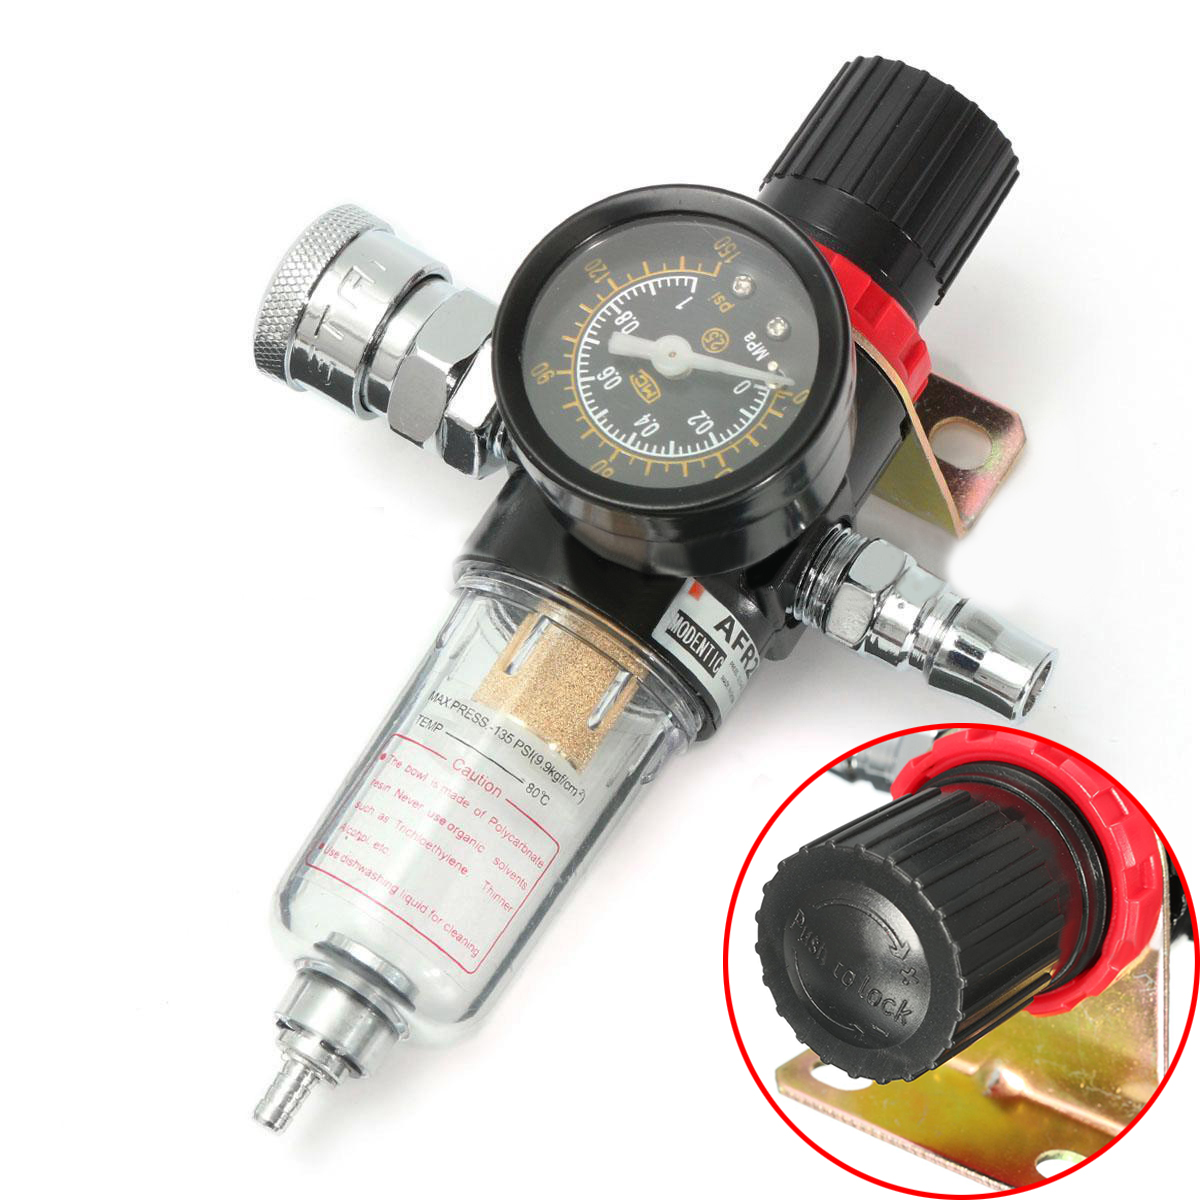 1/4 AFR2000 Air Compressor Oil Water Filter Regulator Pressure Gauge Moisture Trap with Fittings Mayitr air compressor o ring 1 2pt thread oil level sight glass